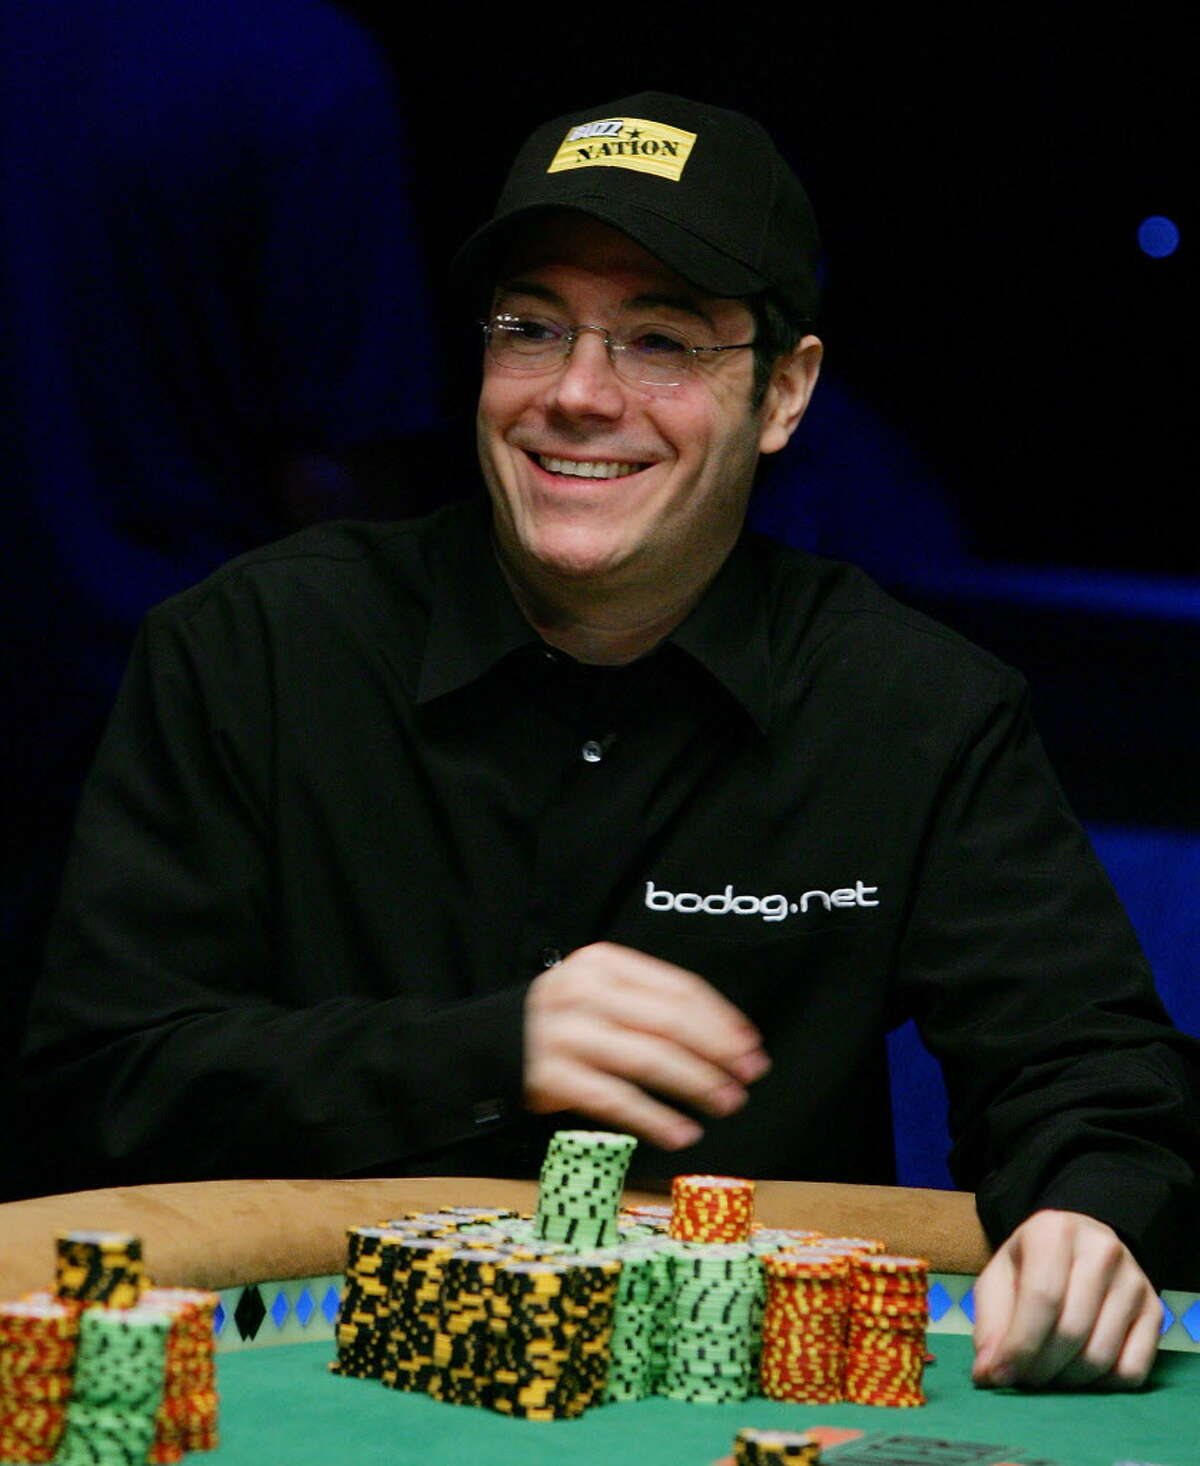 LAS VEGAS - AUGUST 08: Jamie Gold of California smiles after amassing over 30 million in chips to lead the field of players in the World Series of Poker no-limit Texas Hold 'em main event at the Rio Hotel & Casino August 8, 2006 in Las Vegas, Nevada. The main event, which began with more than 8,700 players on July 28, will be narrowed to nine players today. They will compete for the top prize of USD 12 million on the final table, which begins August 10. (Photo by Ethan Miller/Getty Images) *** Local Caption *** Jamie Gold